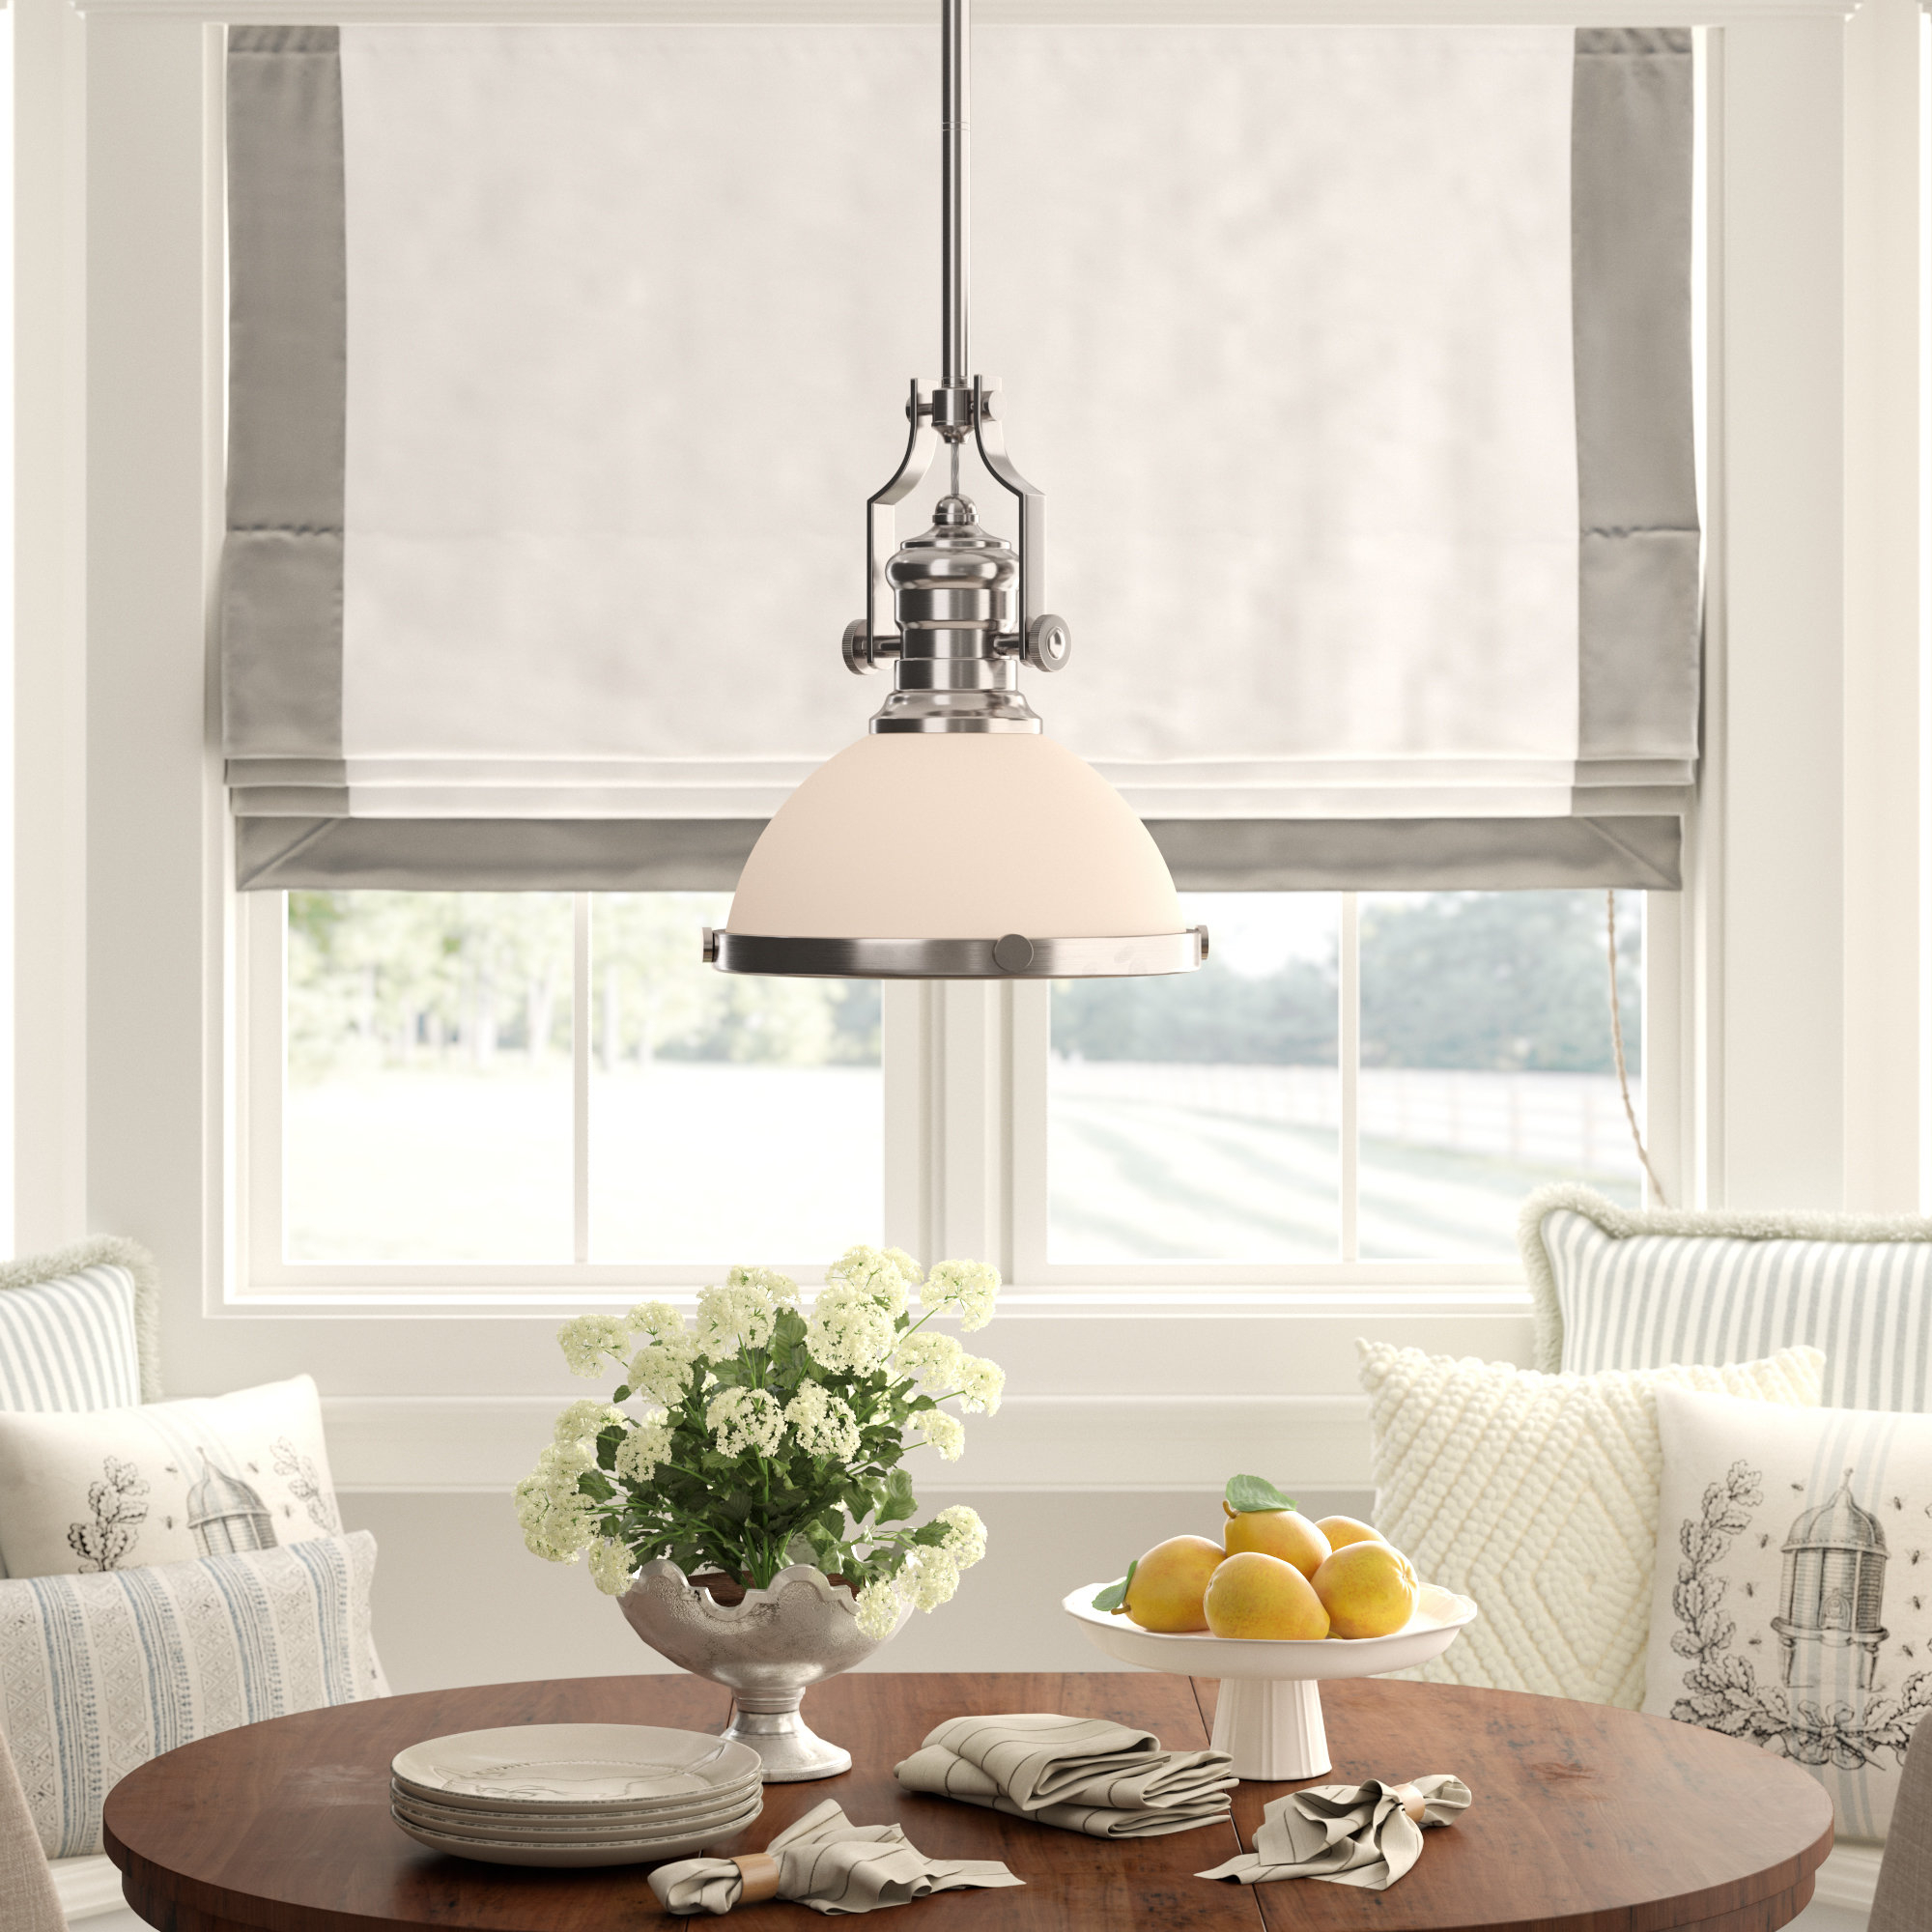 Birch Lane Proctor 1 Light Bowl Pendant & Reviews | Wayfair (View 3 of 30)